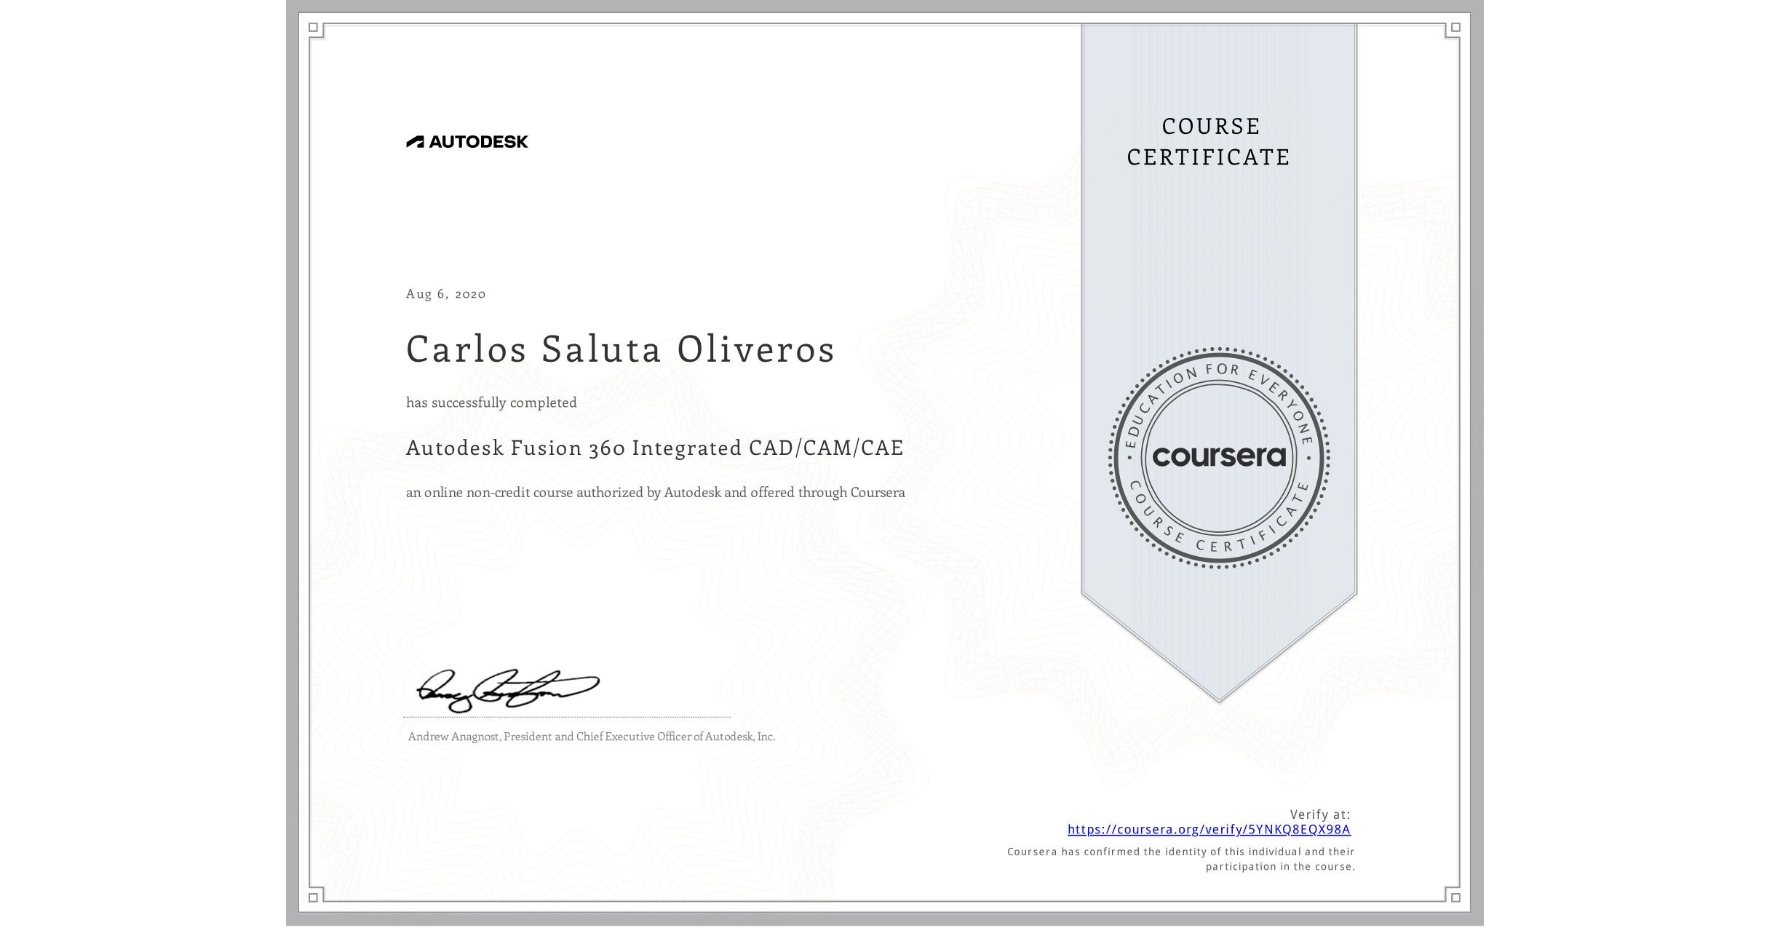 View certificate for Carlos Saluta Oliveros, Autodesk Fusion 360 Integrated CAD/CAM/CAE, an online non-credit course authorized by Autodesk and offered through Coursera